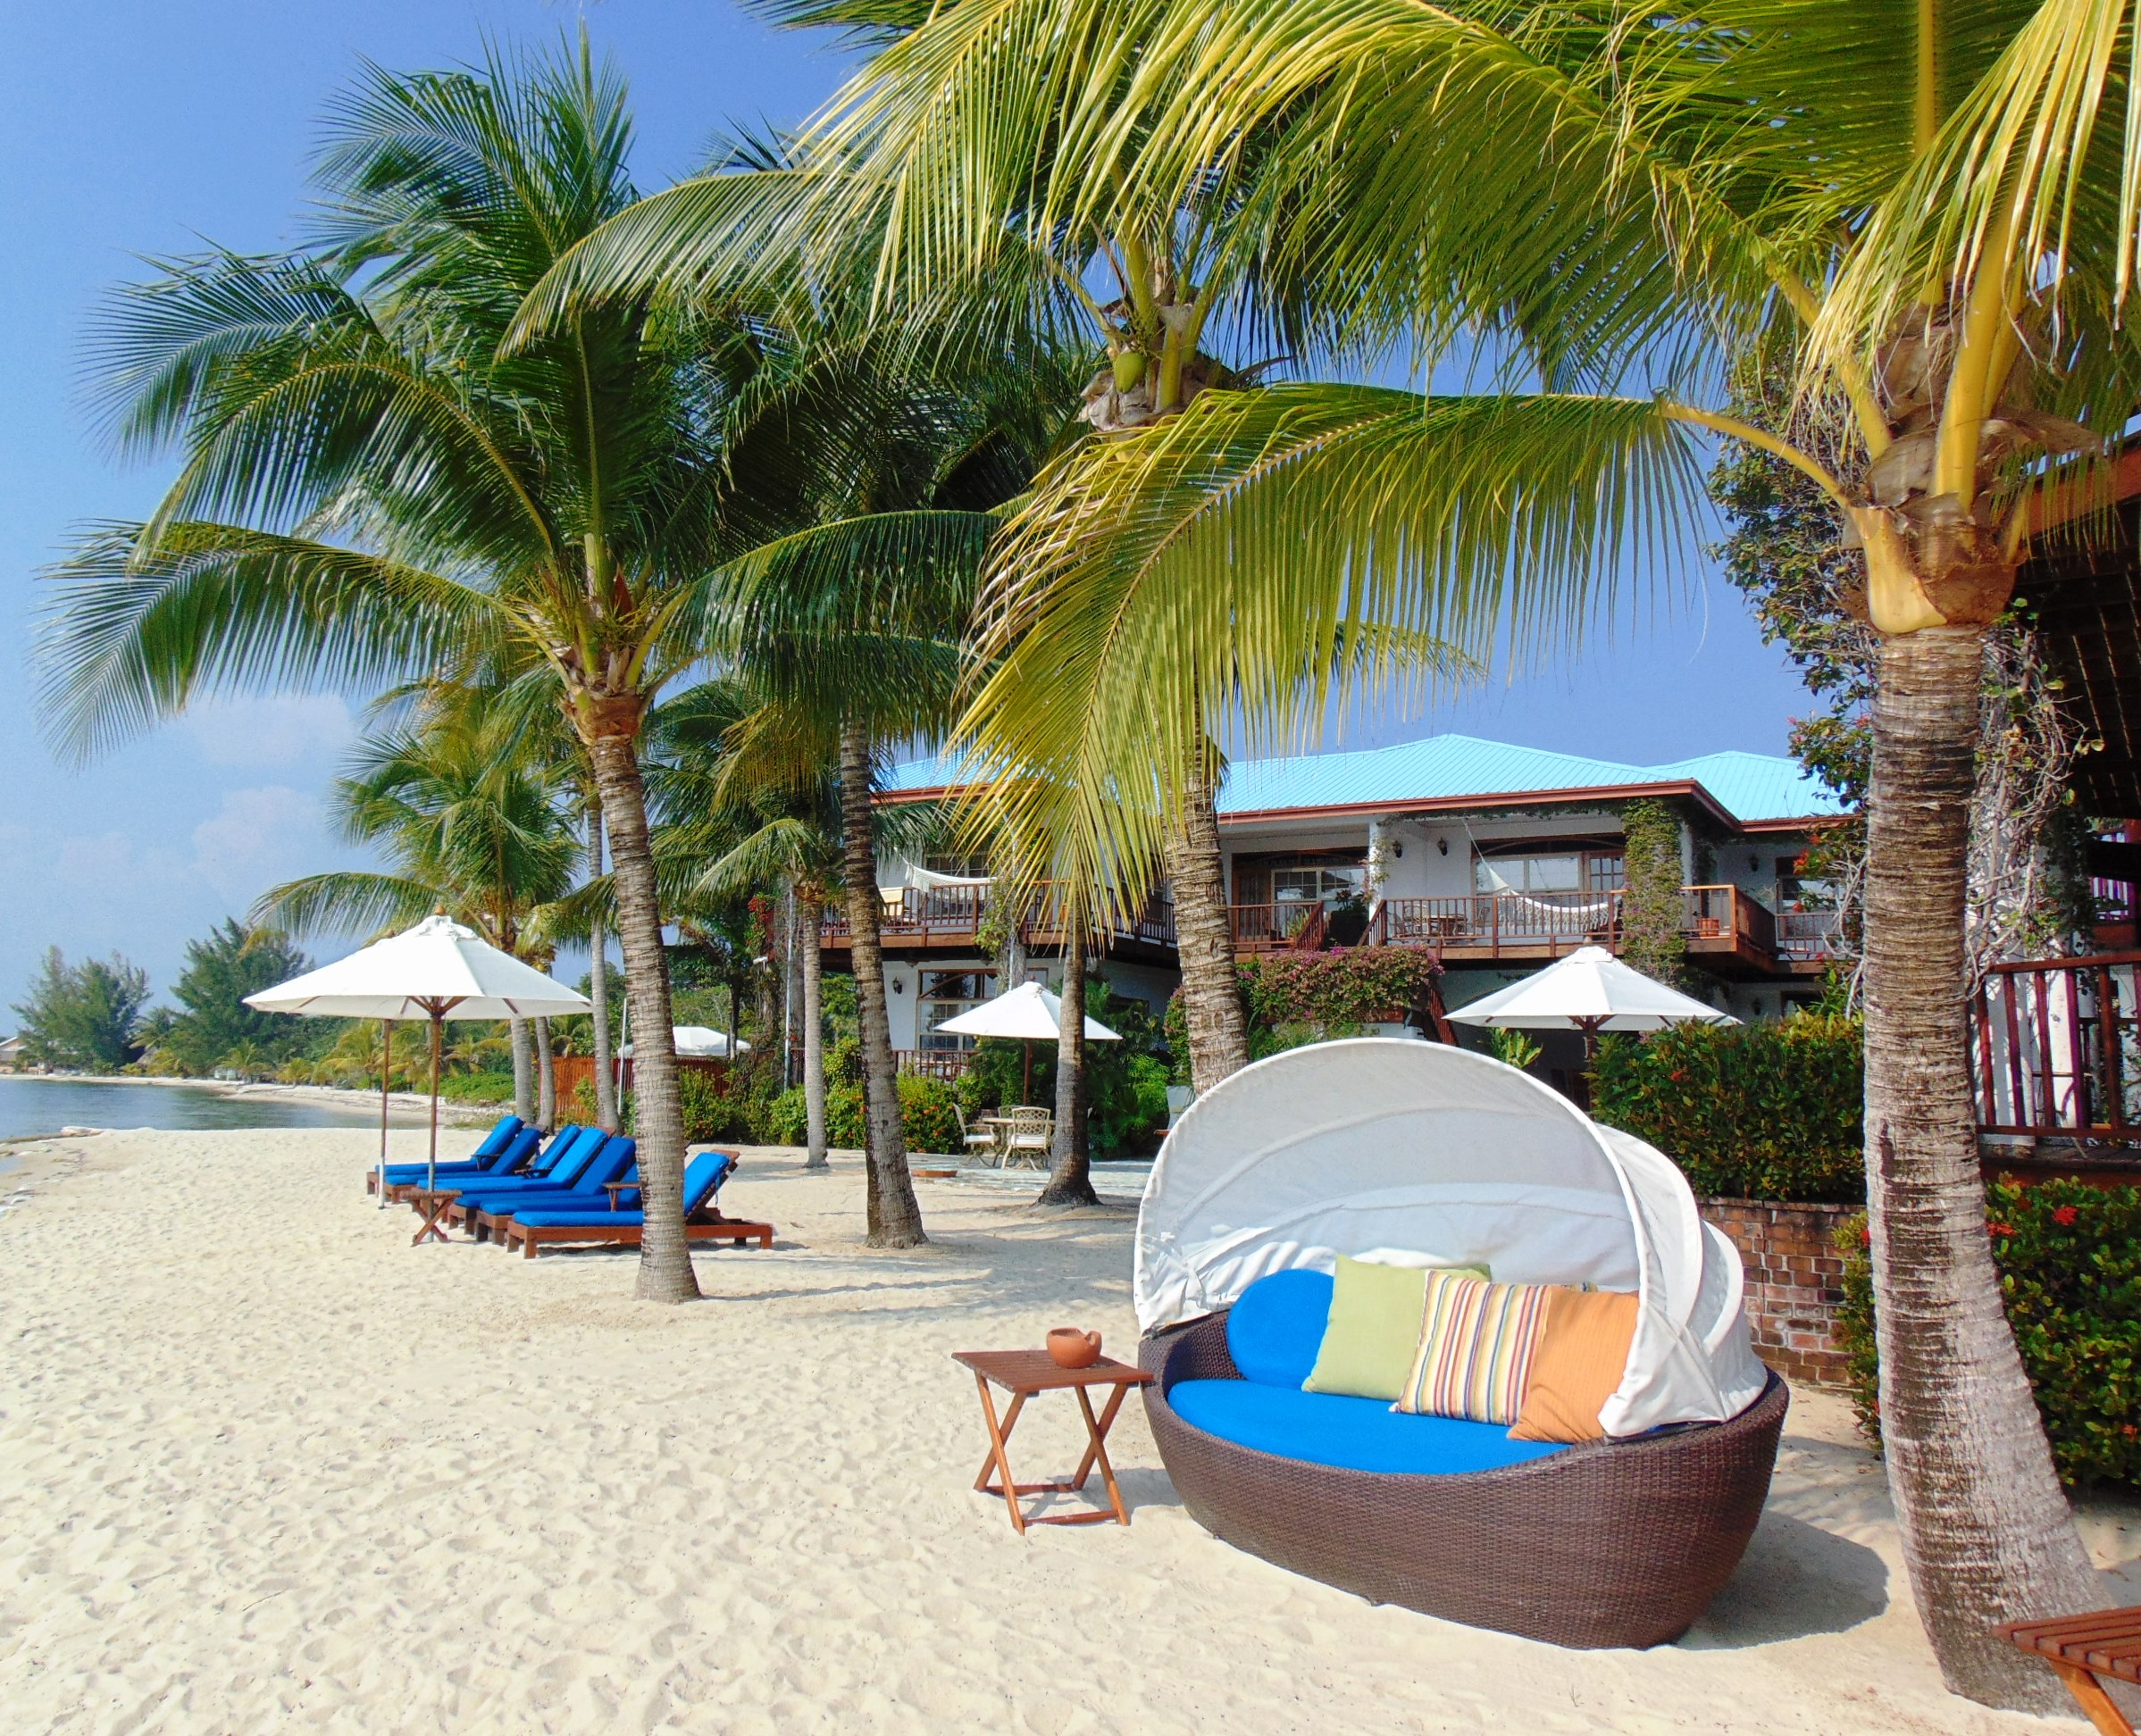 Vacation Home Rental Services and Amenities in Belize